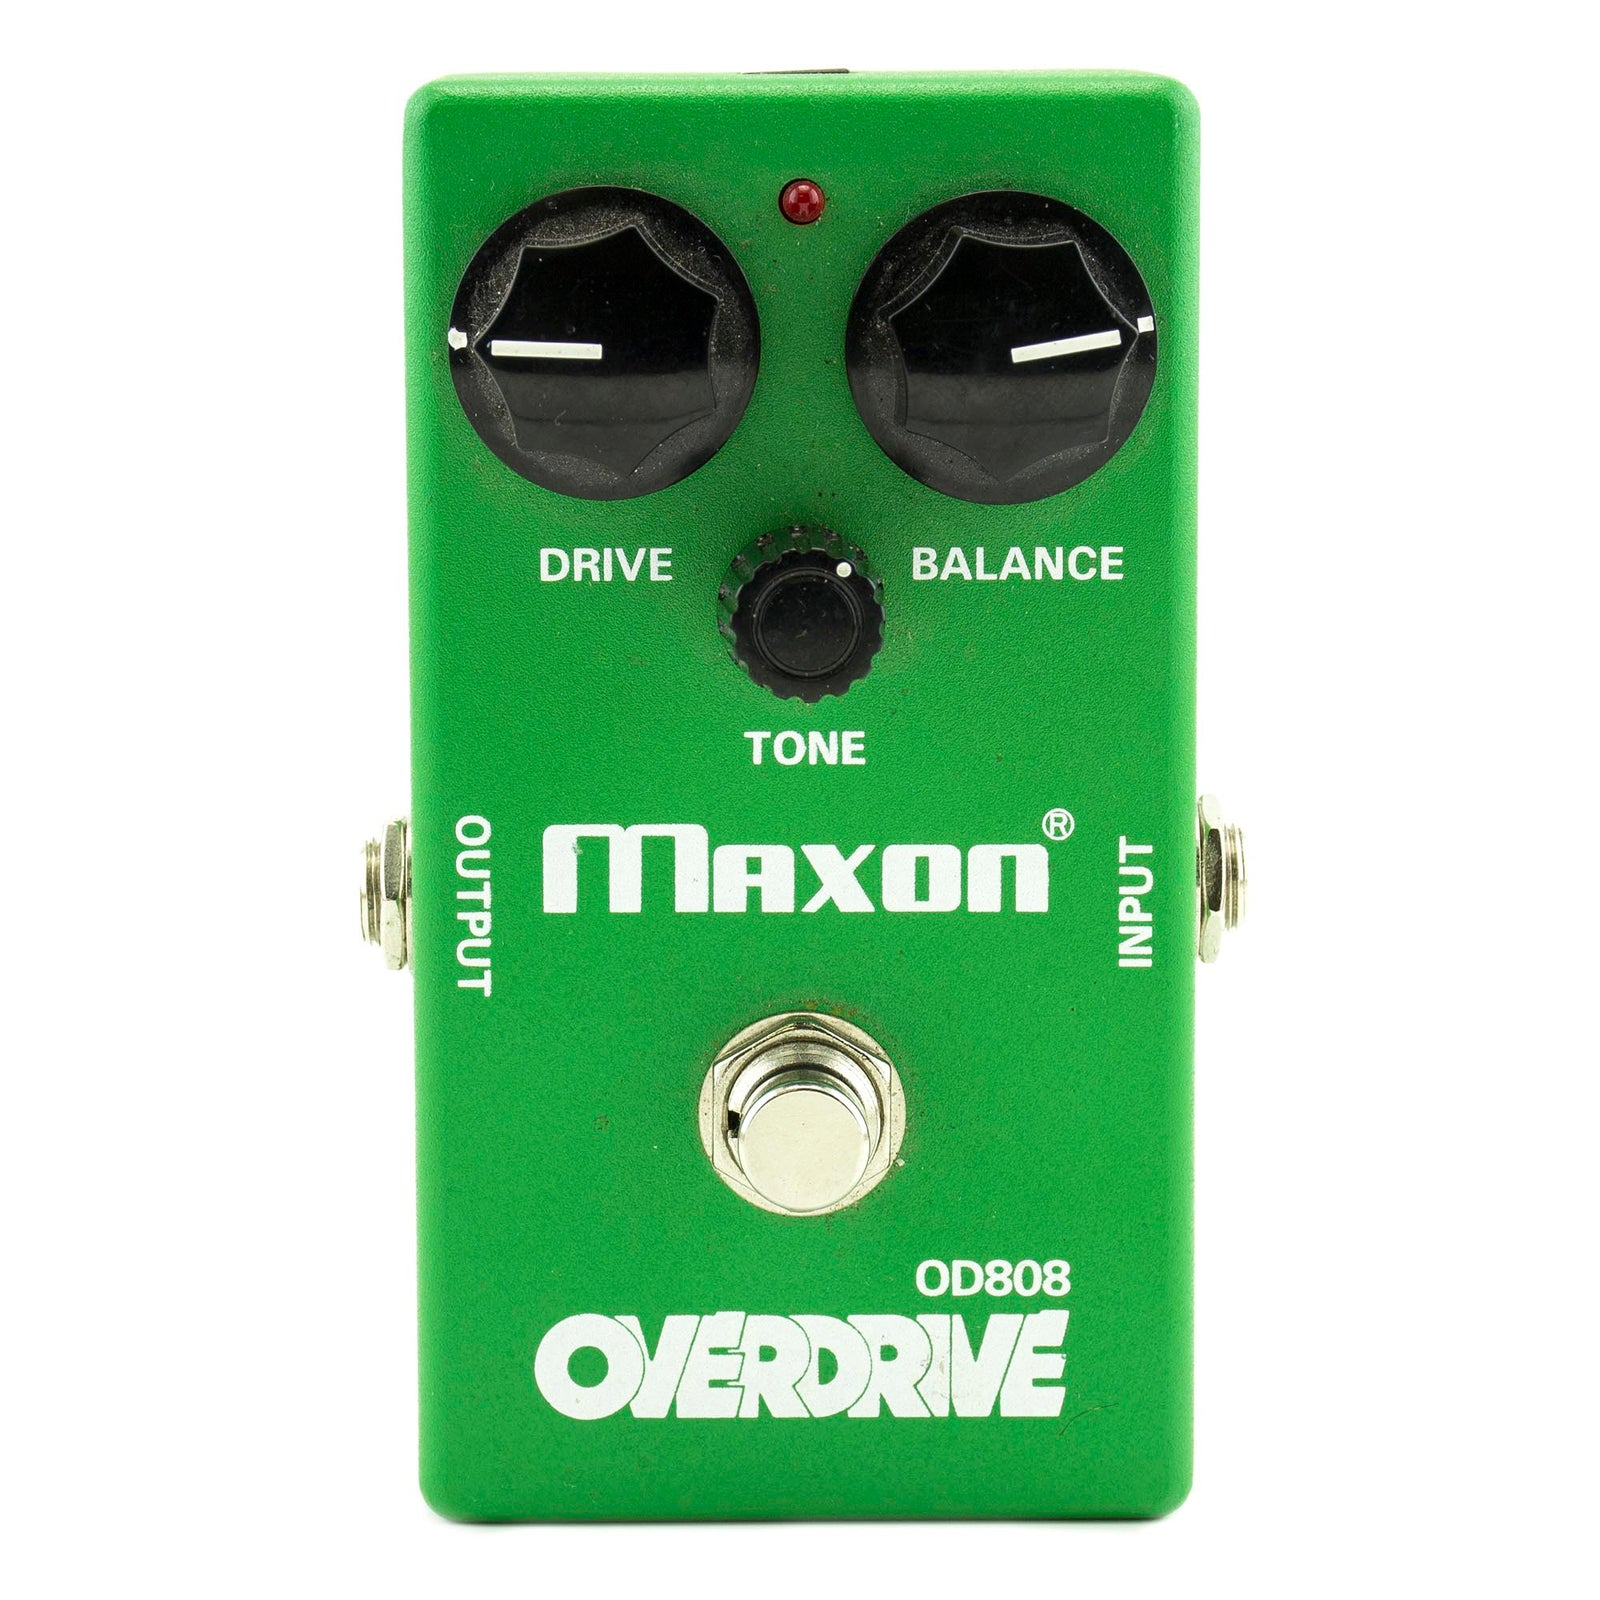 Maxon OD808 Overdrive - Used